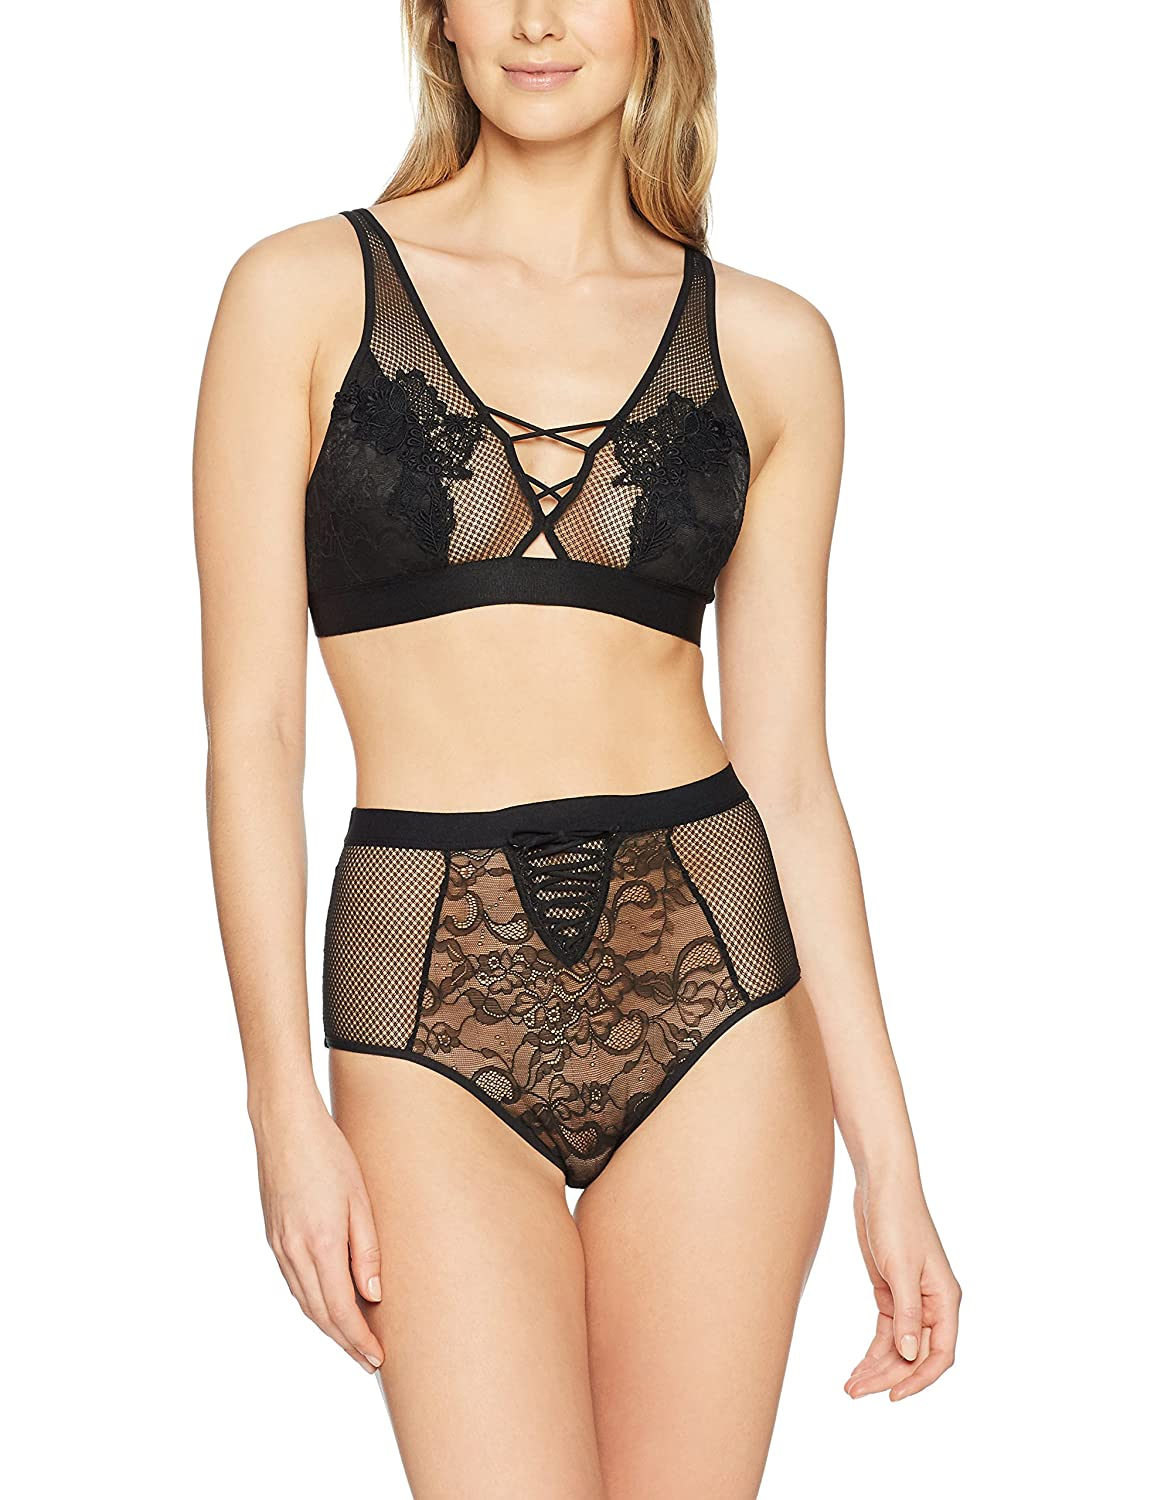 ab9857e2d3f Amazon.com  Mae Women s Allover Lace Bralette and High Waisted Panty Set   Clothing